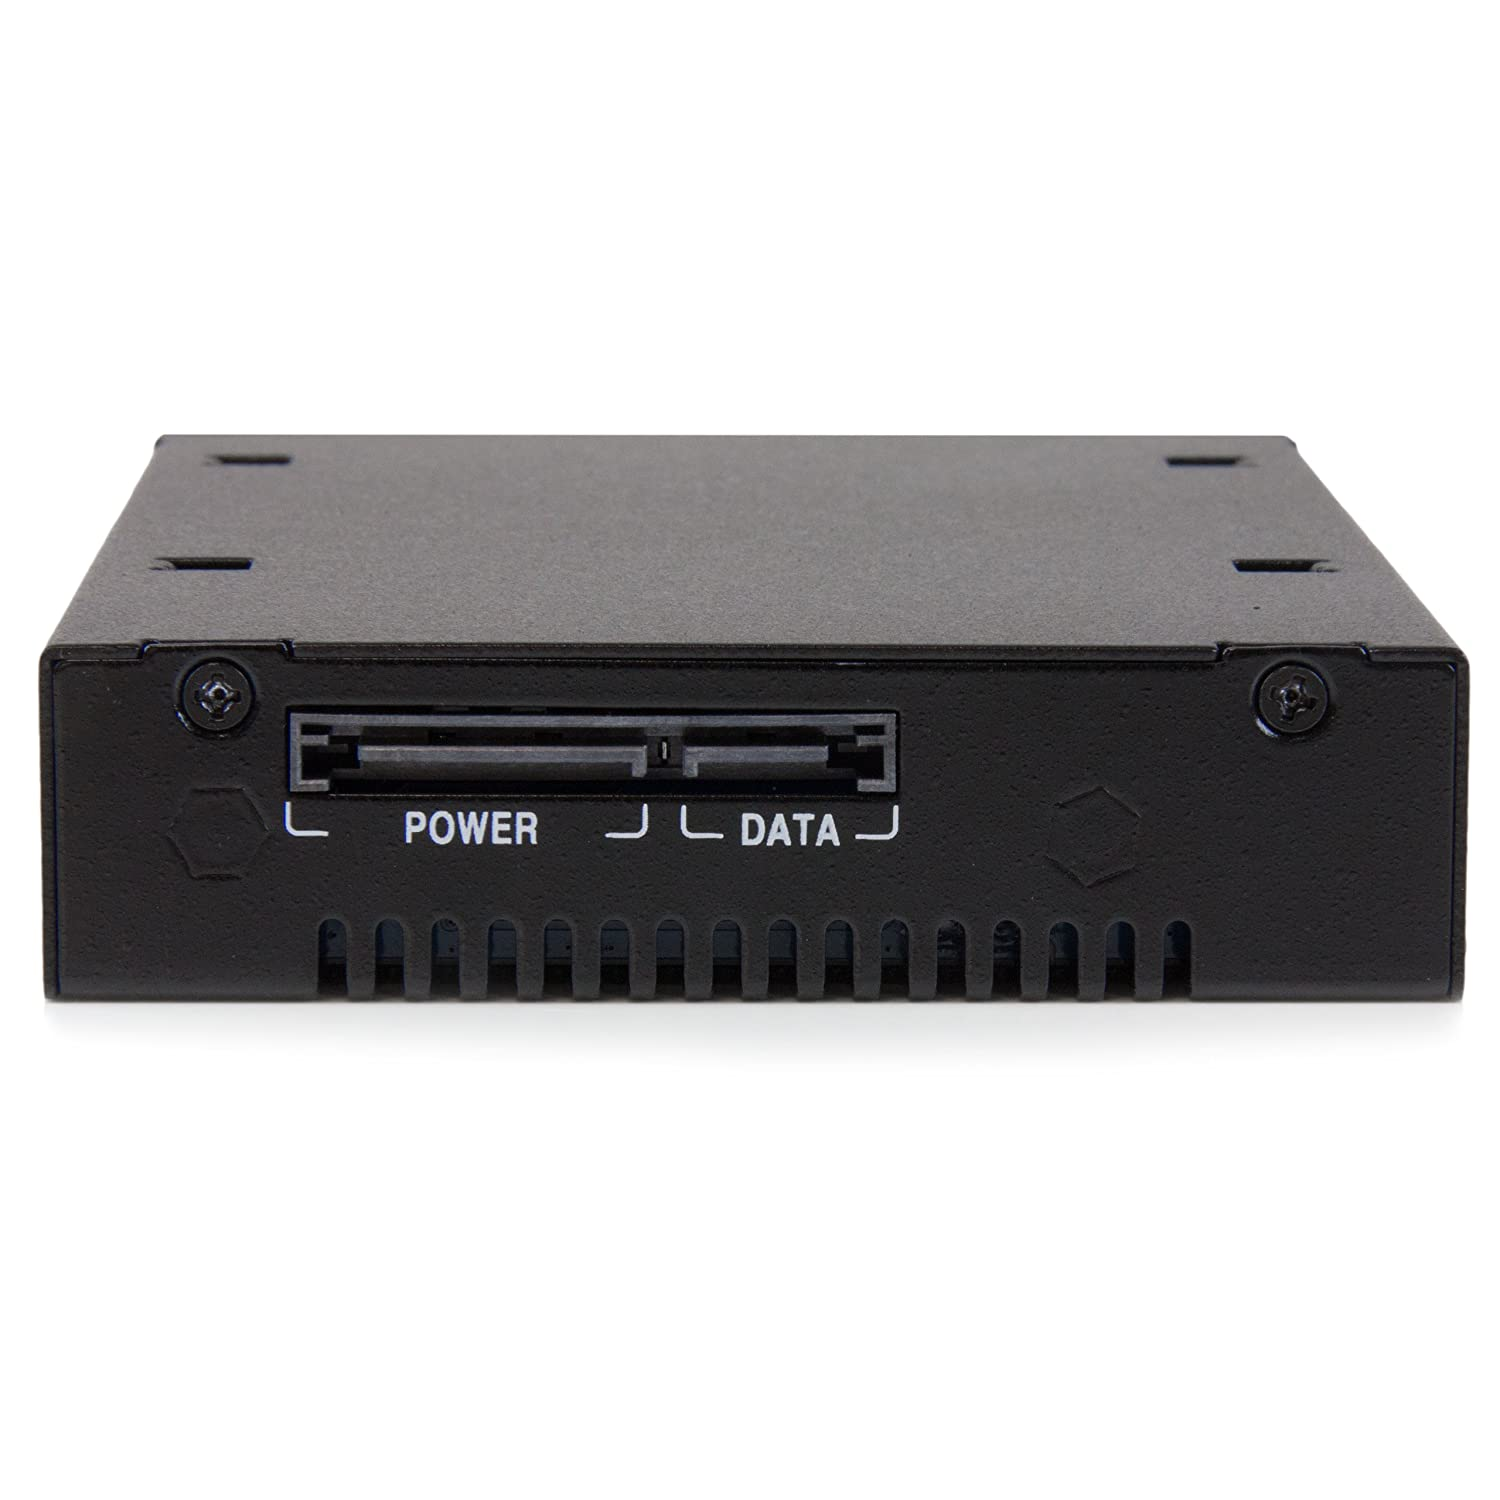 StarTech.com 2.5 Inch SATA Removable Hard Drive Bay for PC Expansion Slot